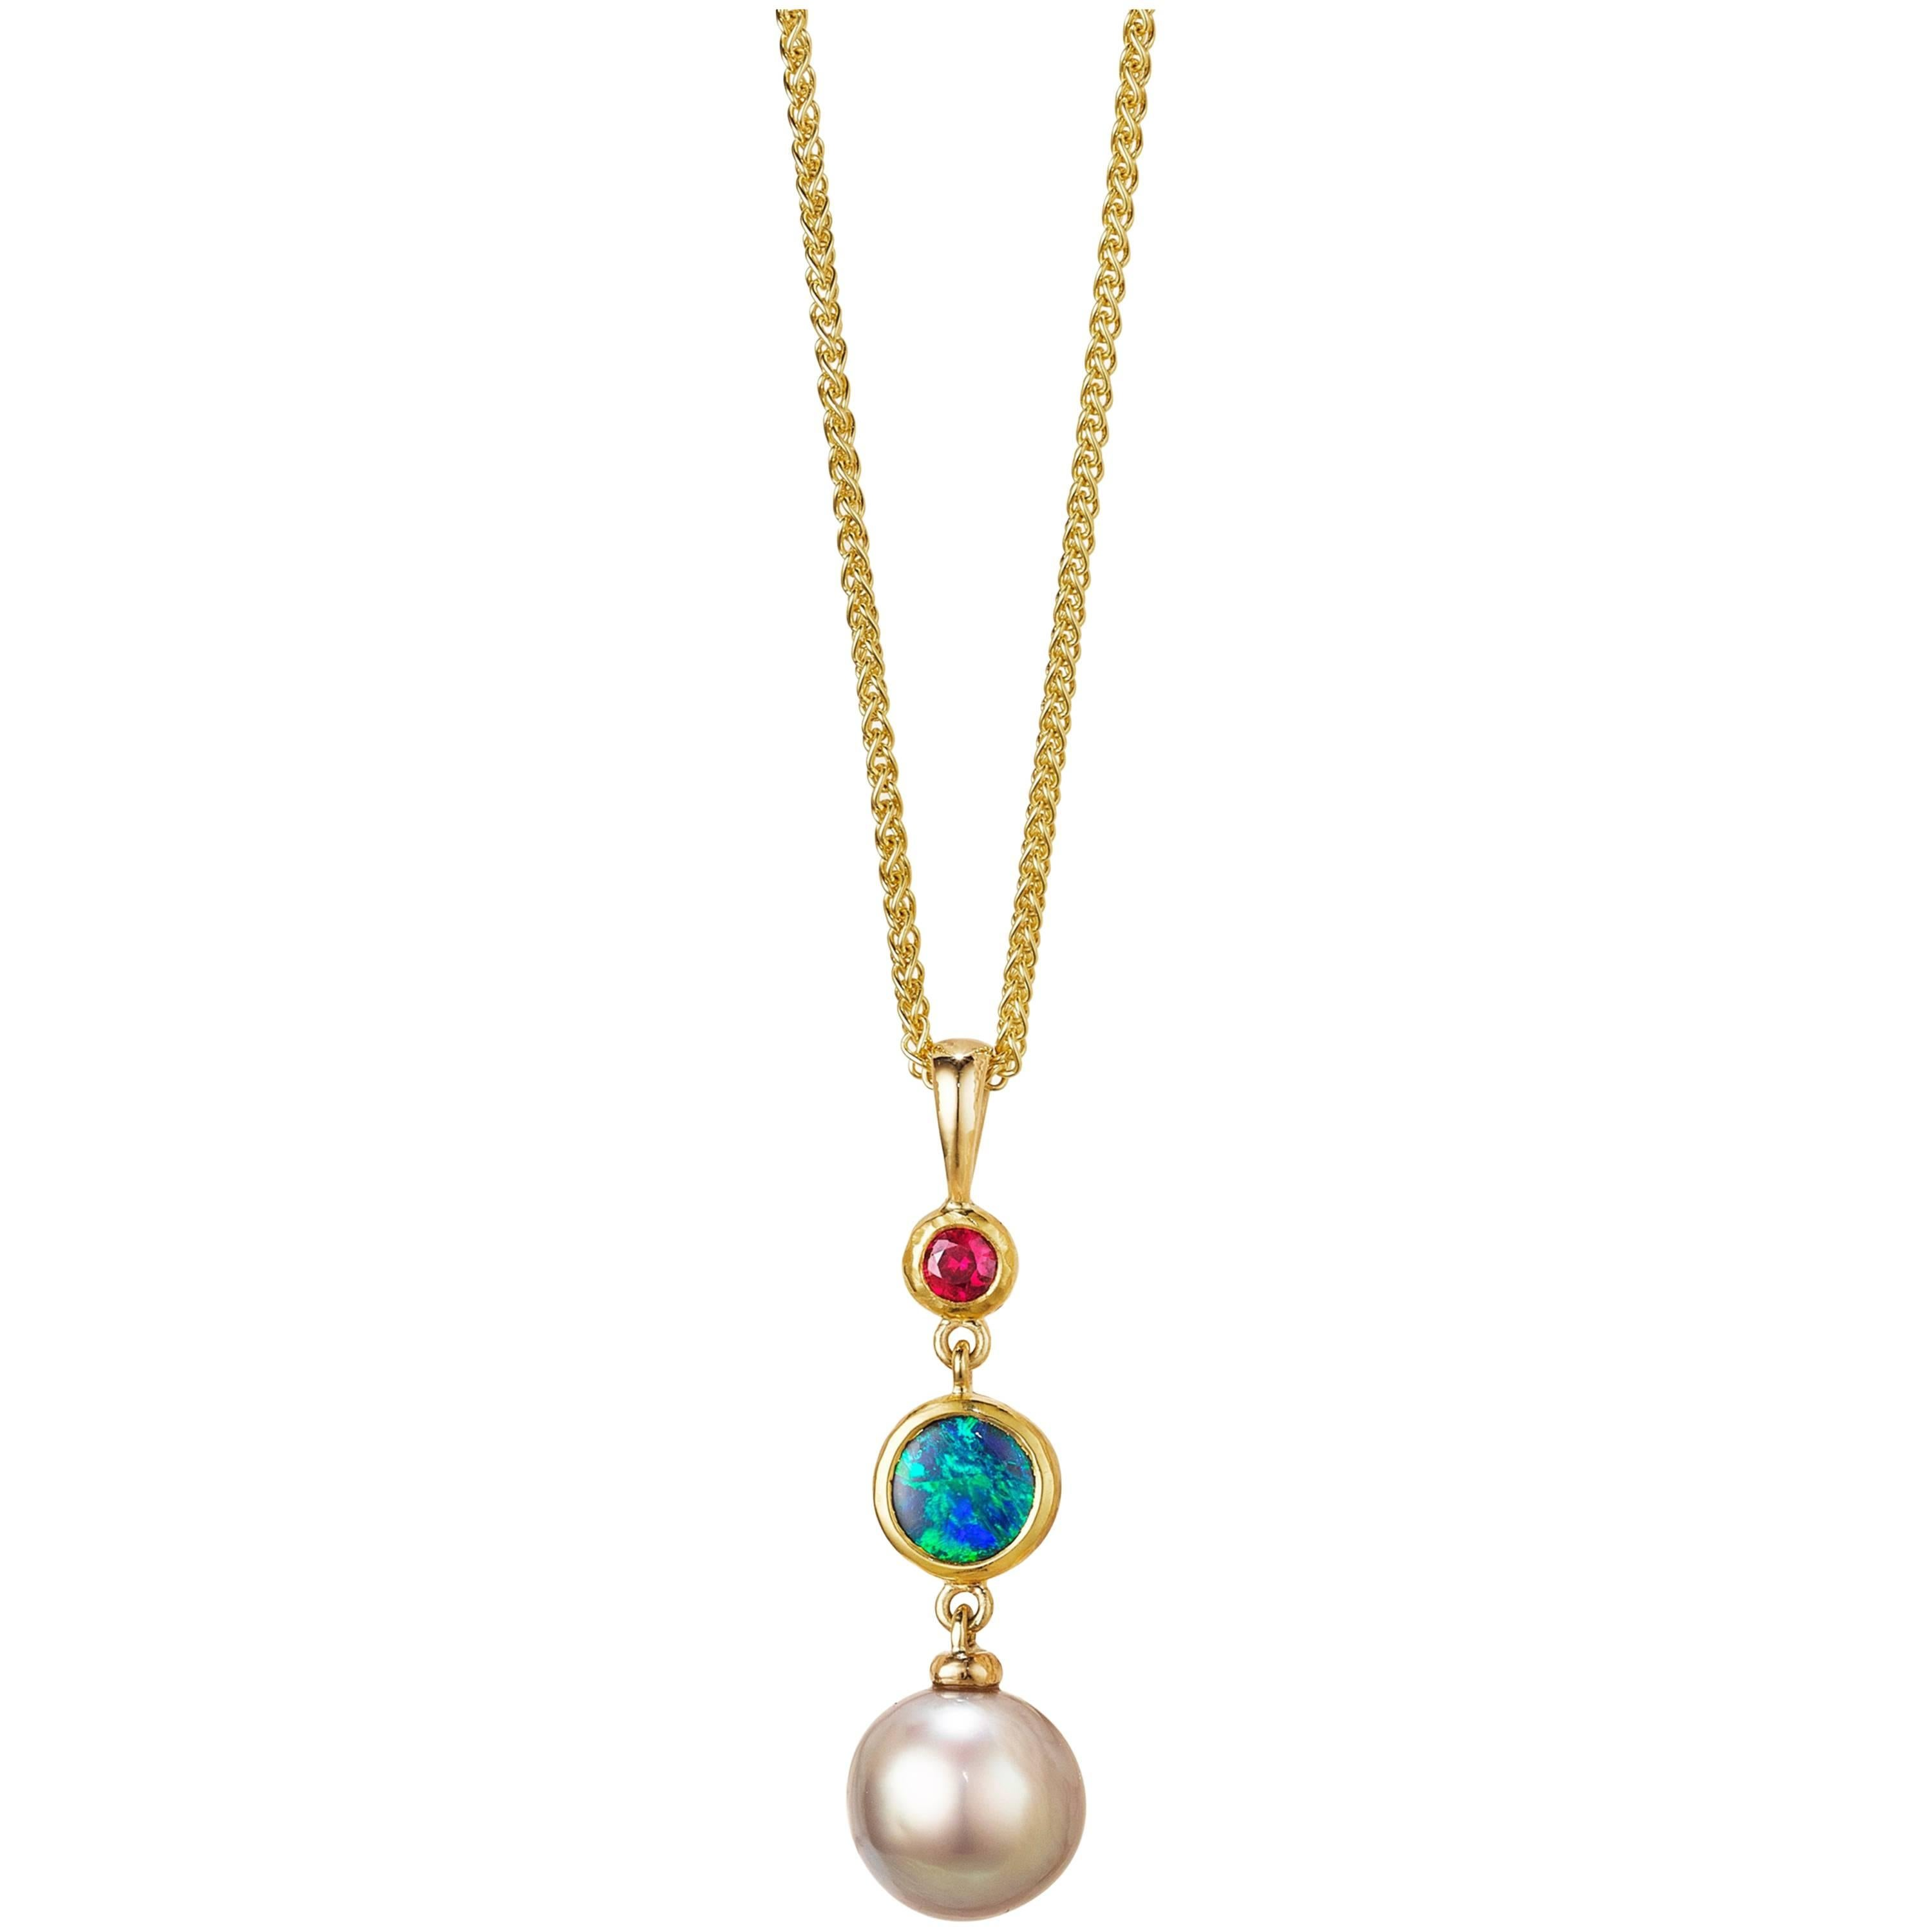 Solid Australian Opal, Sea of Cortez Pearl and Ruby 18K Pendant Necklace